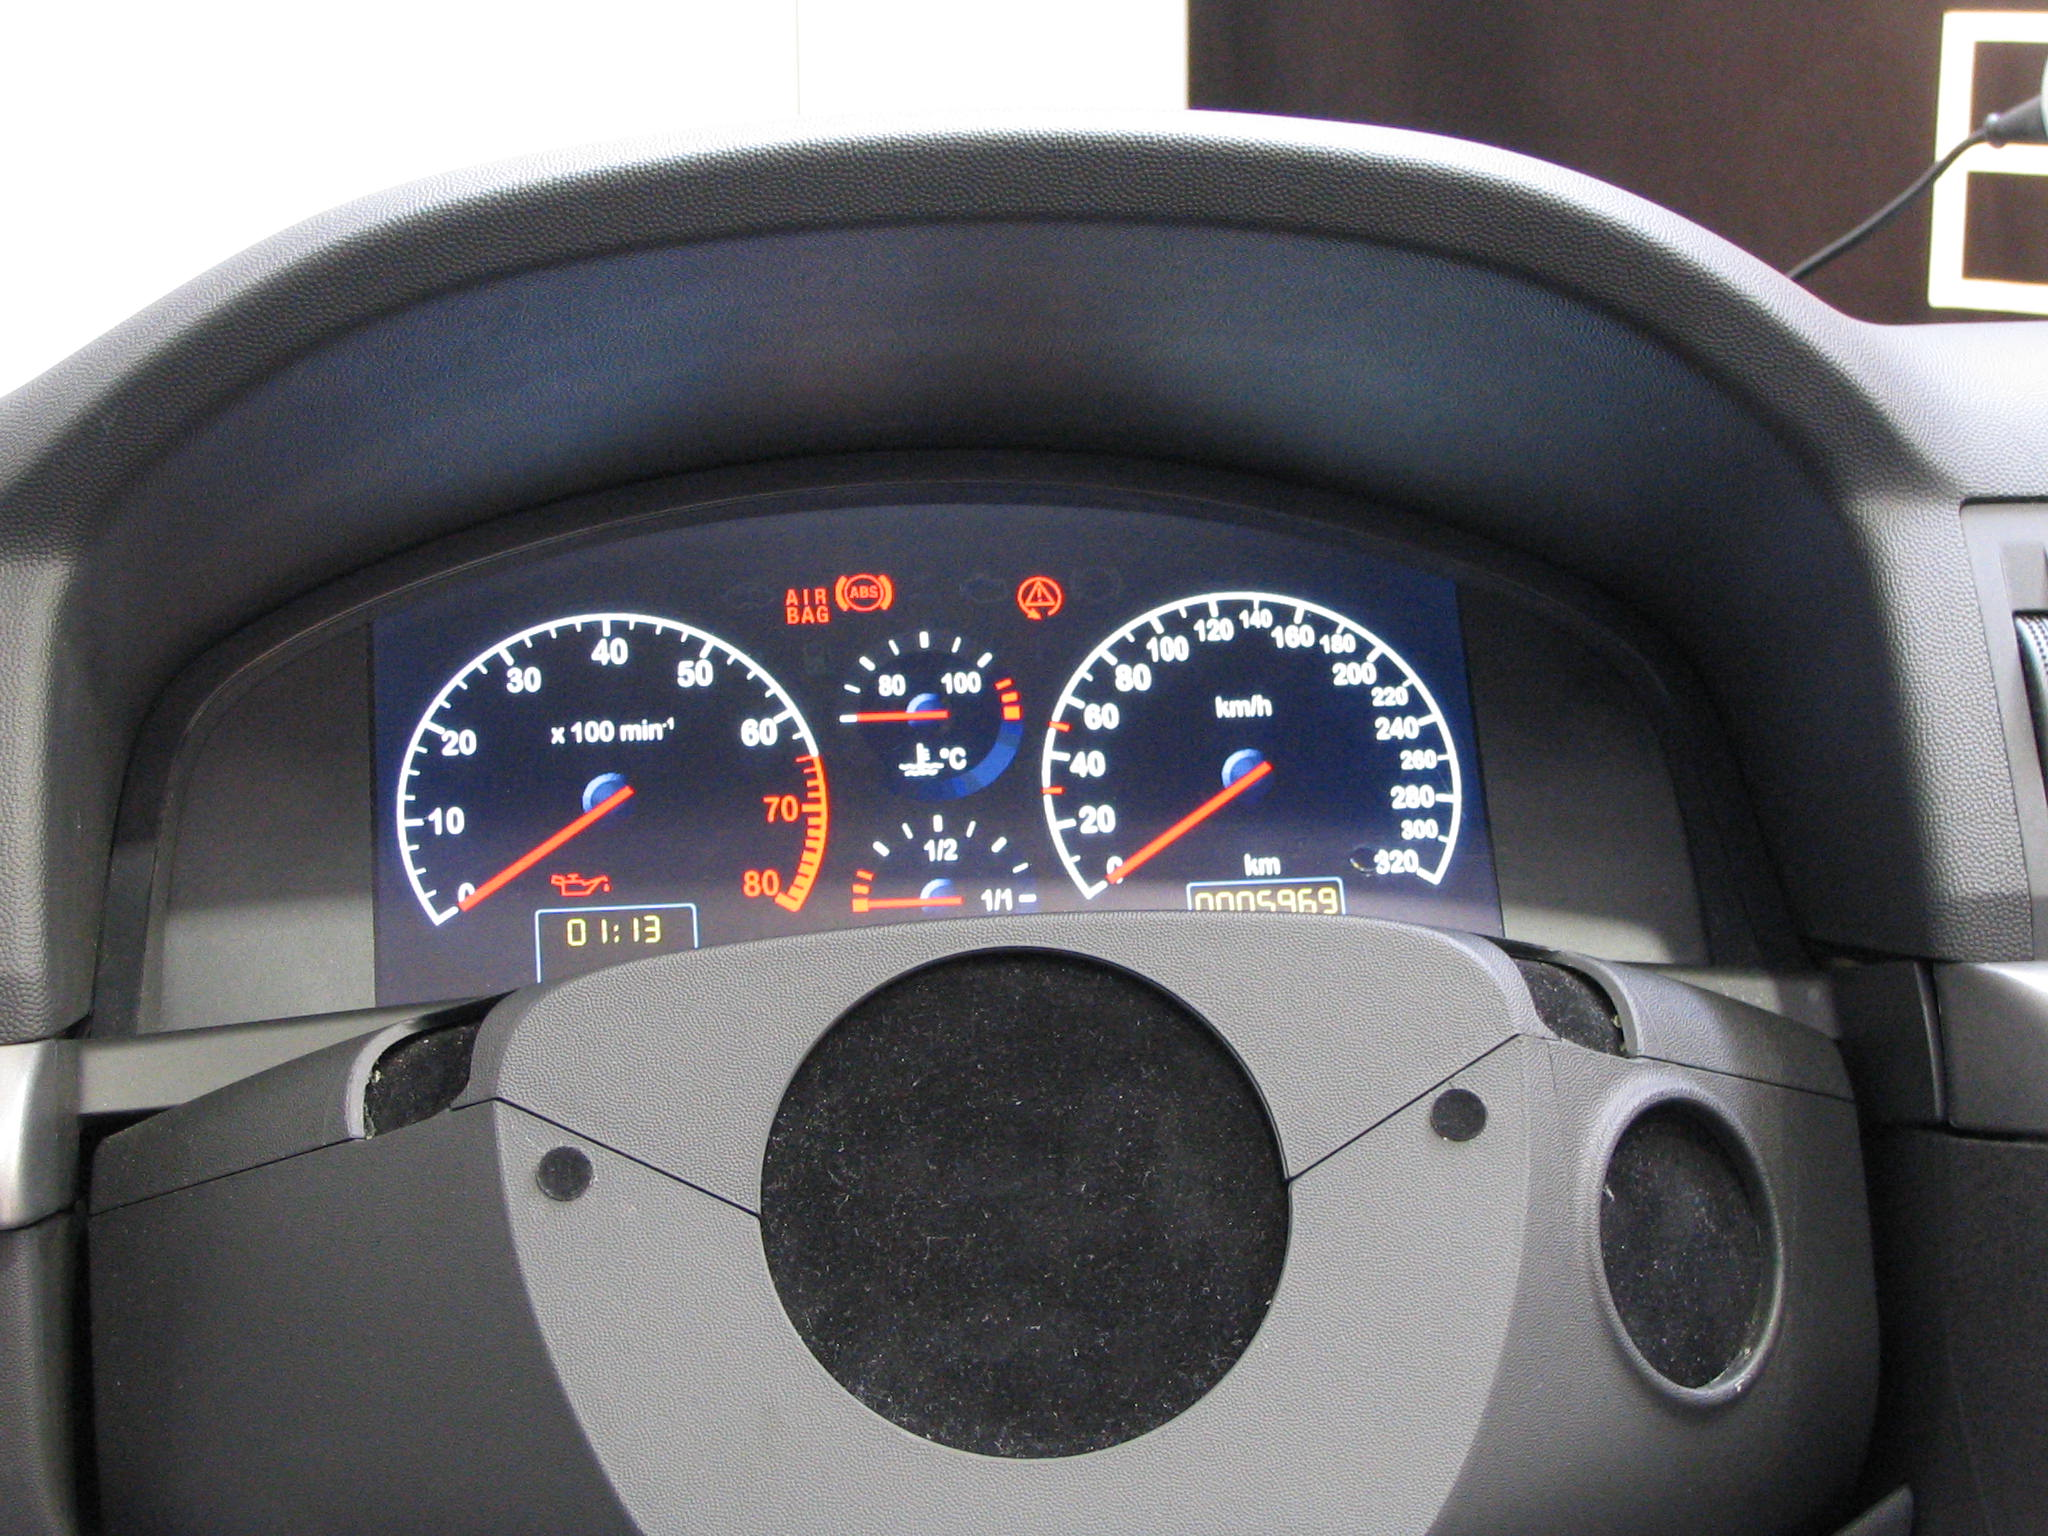 Car dashboard tuningwhat as looks here as round instruments is in